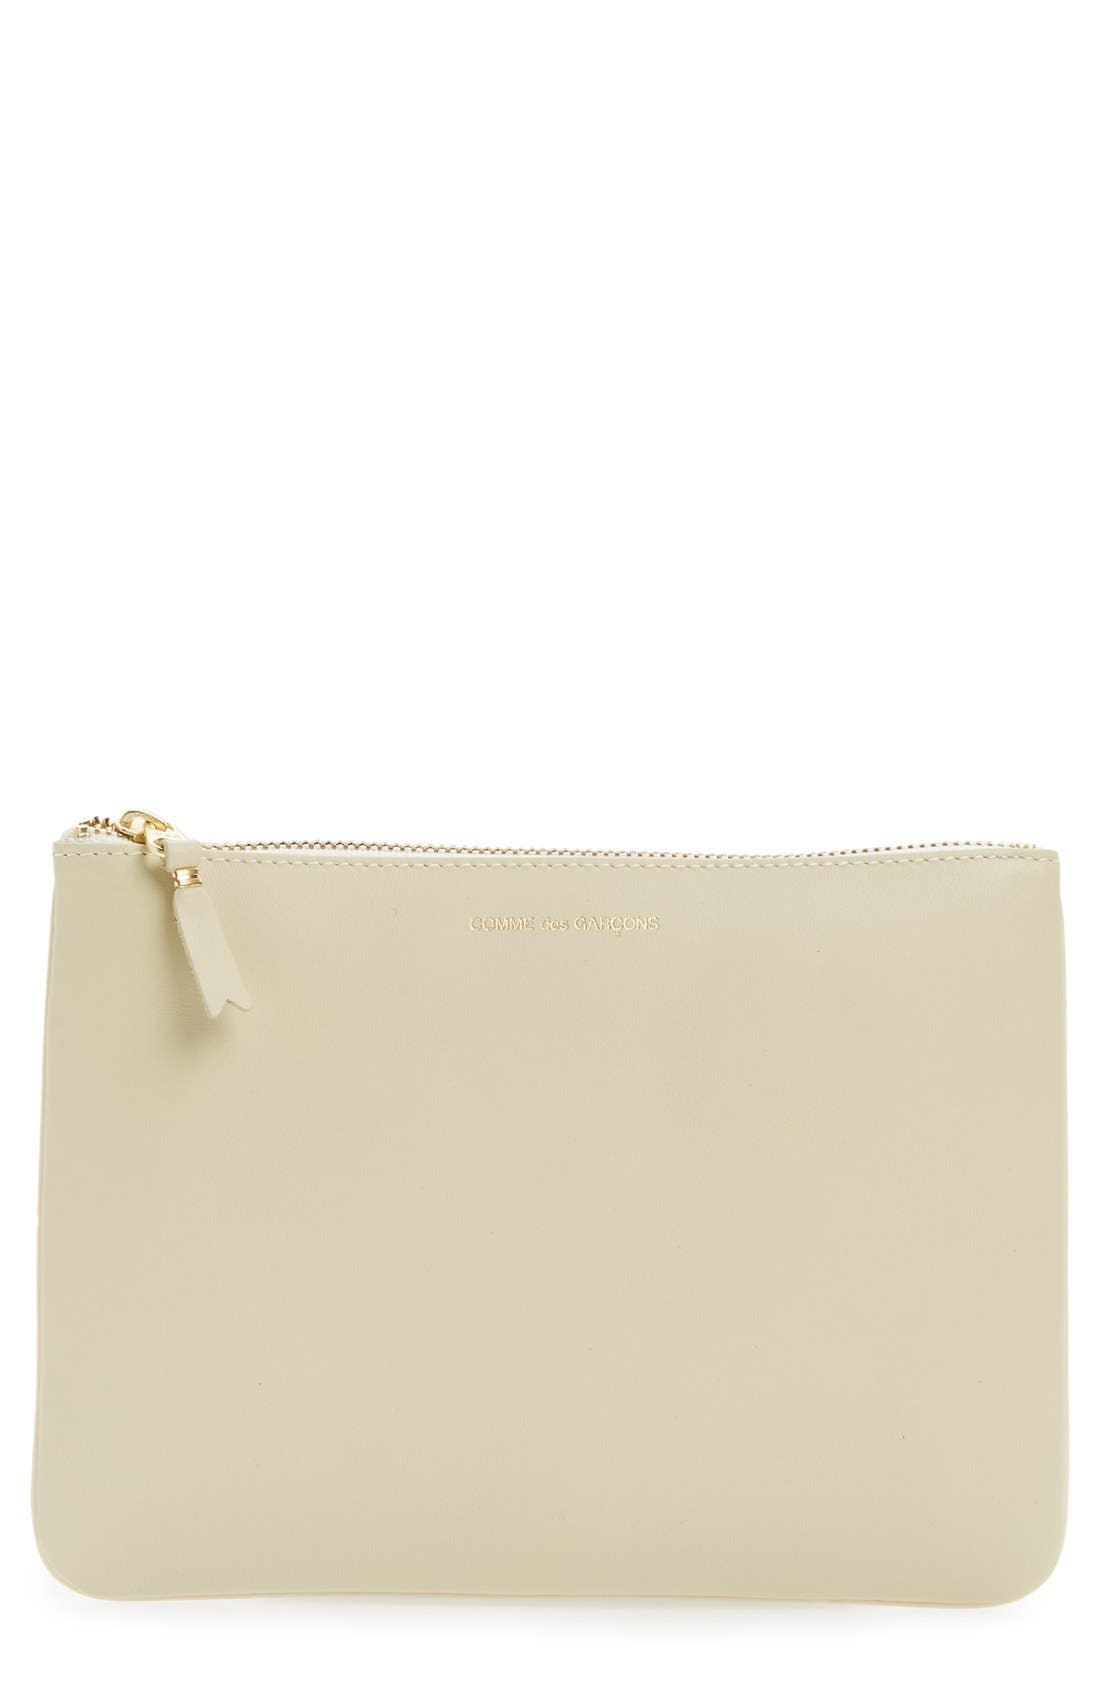 Medium Classic Leather Zip-Up Pouch,                             Main thumbnail 1, color,                             Off White